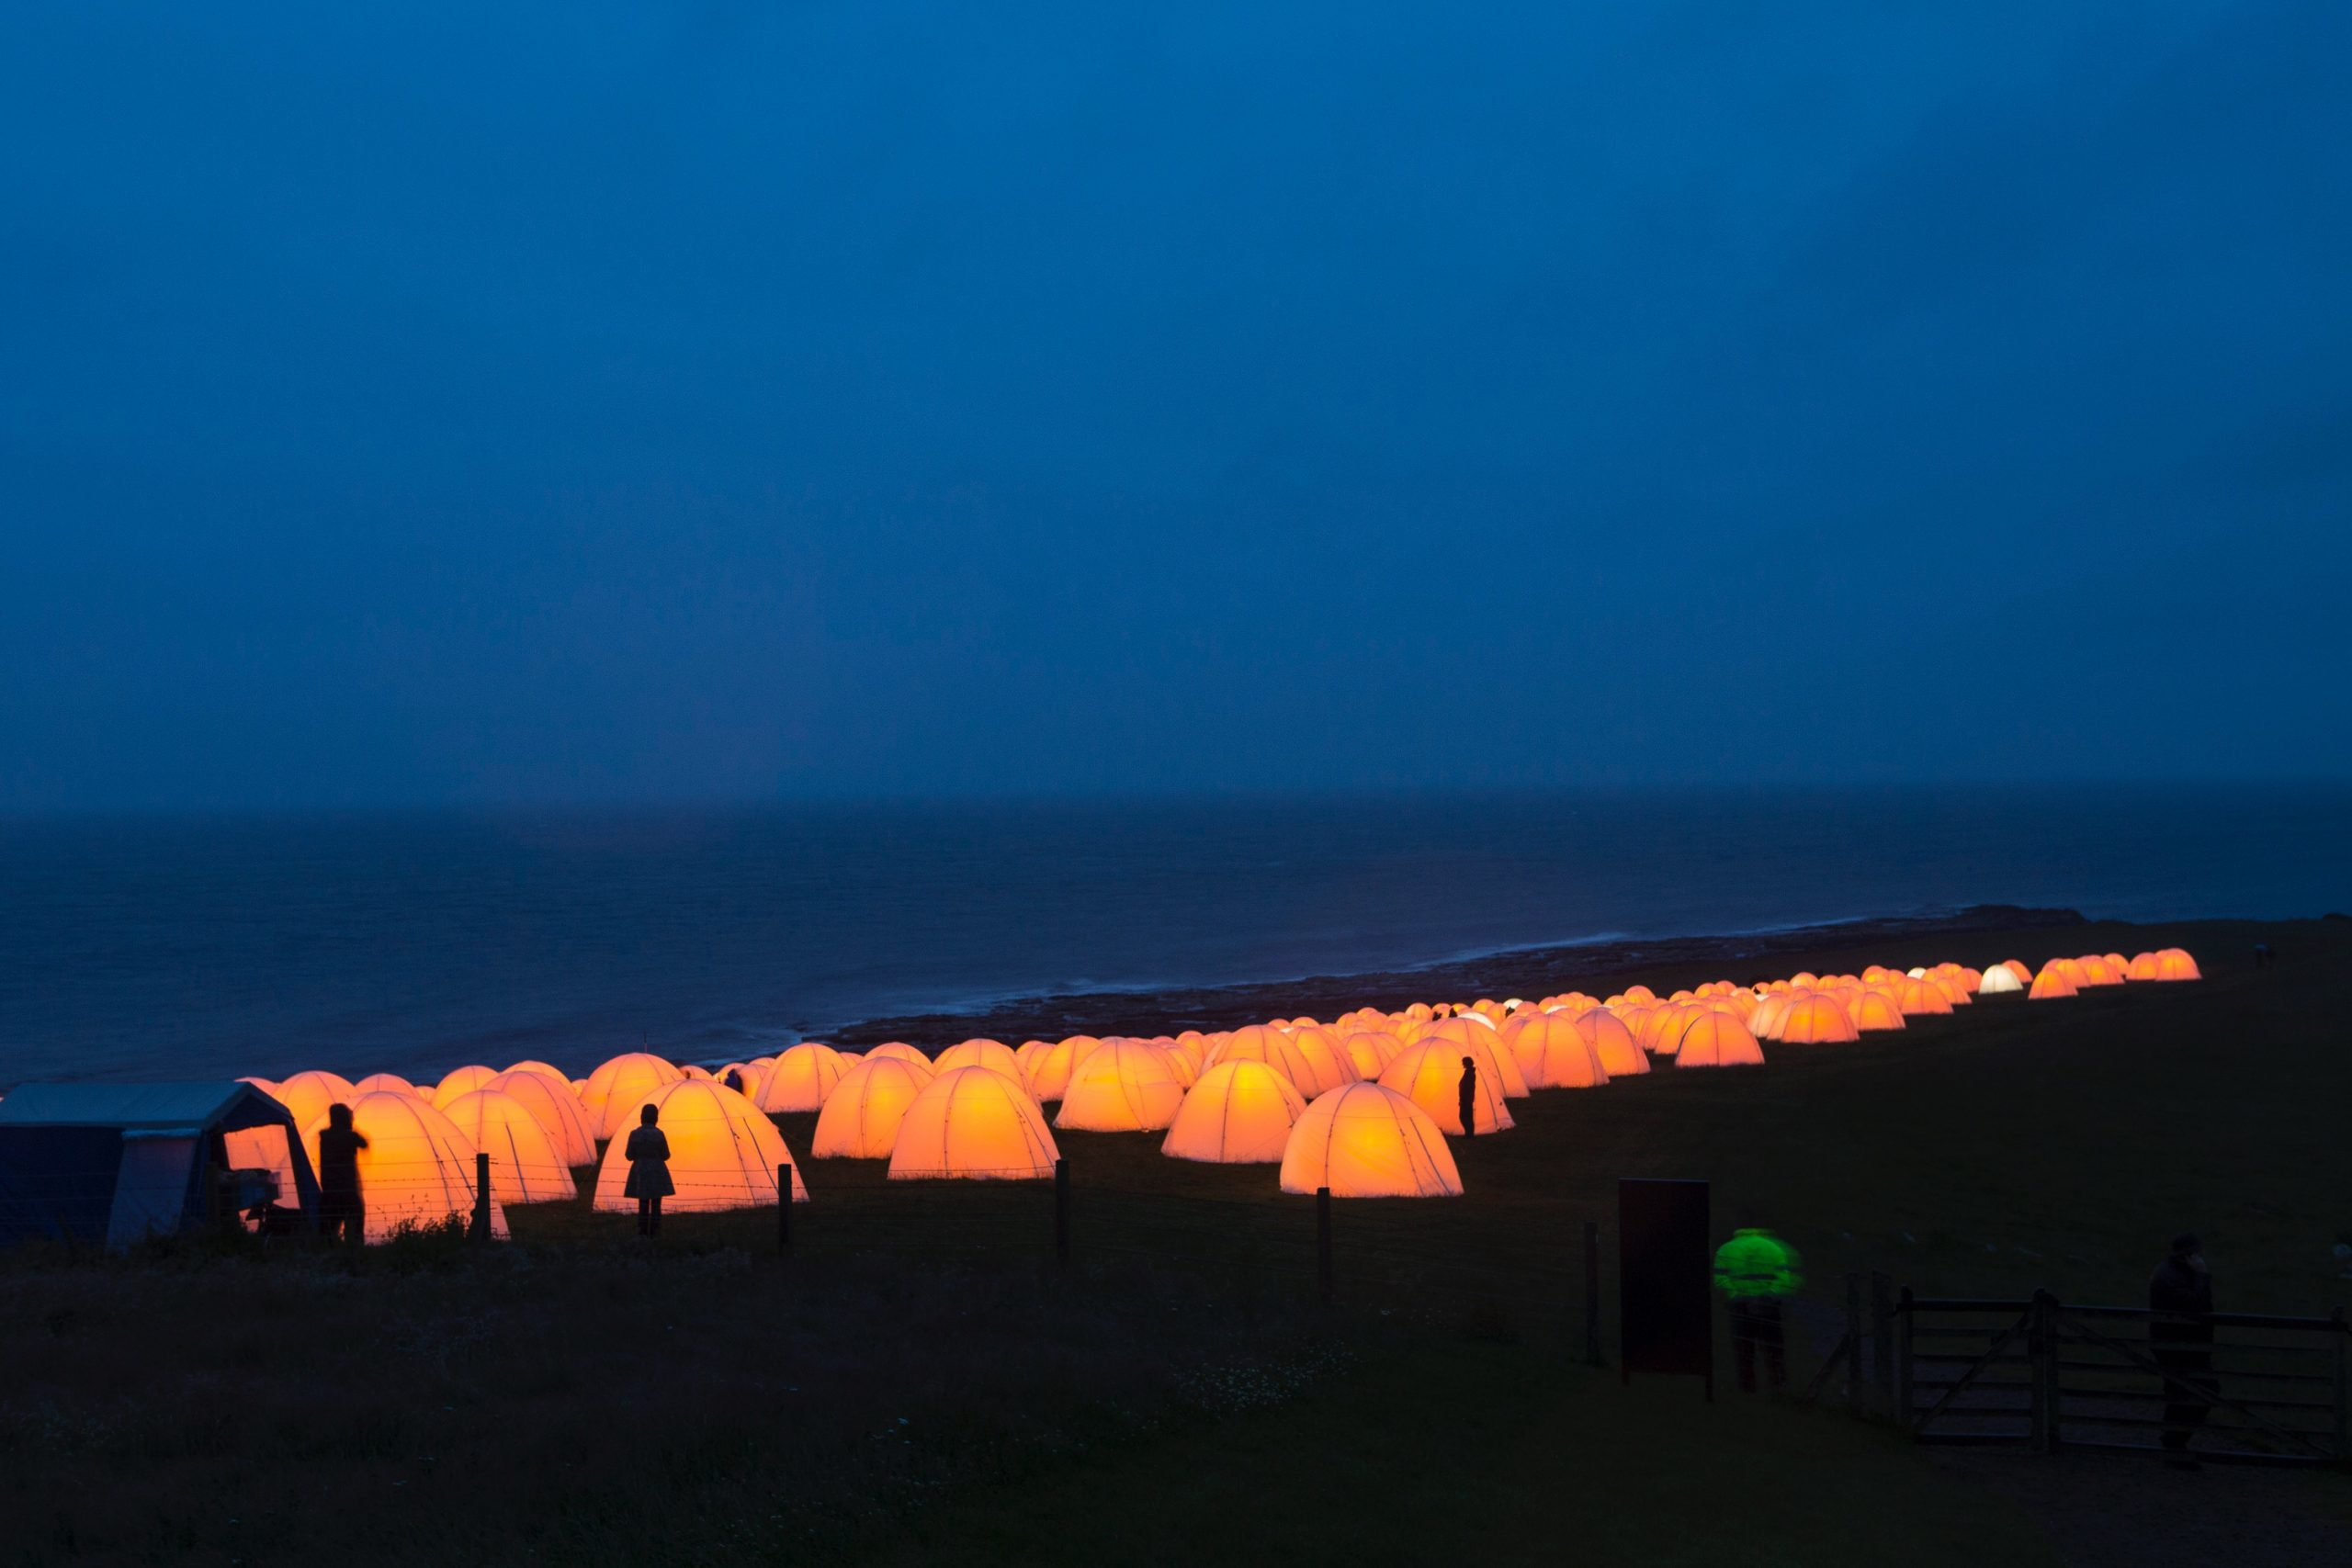 Peace camp at Dunstanburgh Castle, Craster, Northumberland. Behind the glowing tents at dusk is the seafront